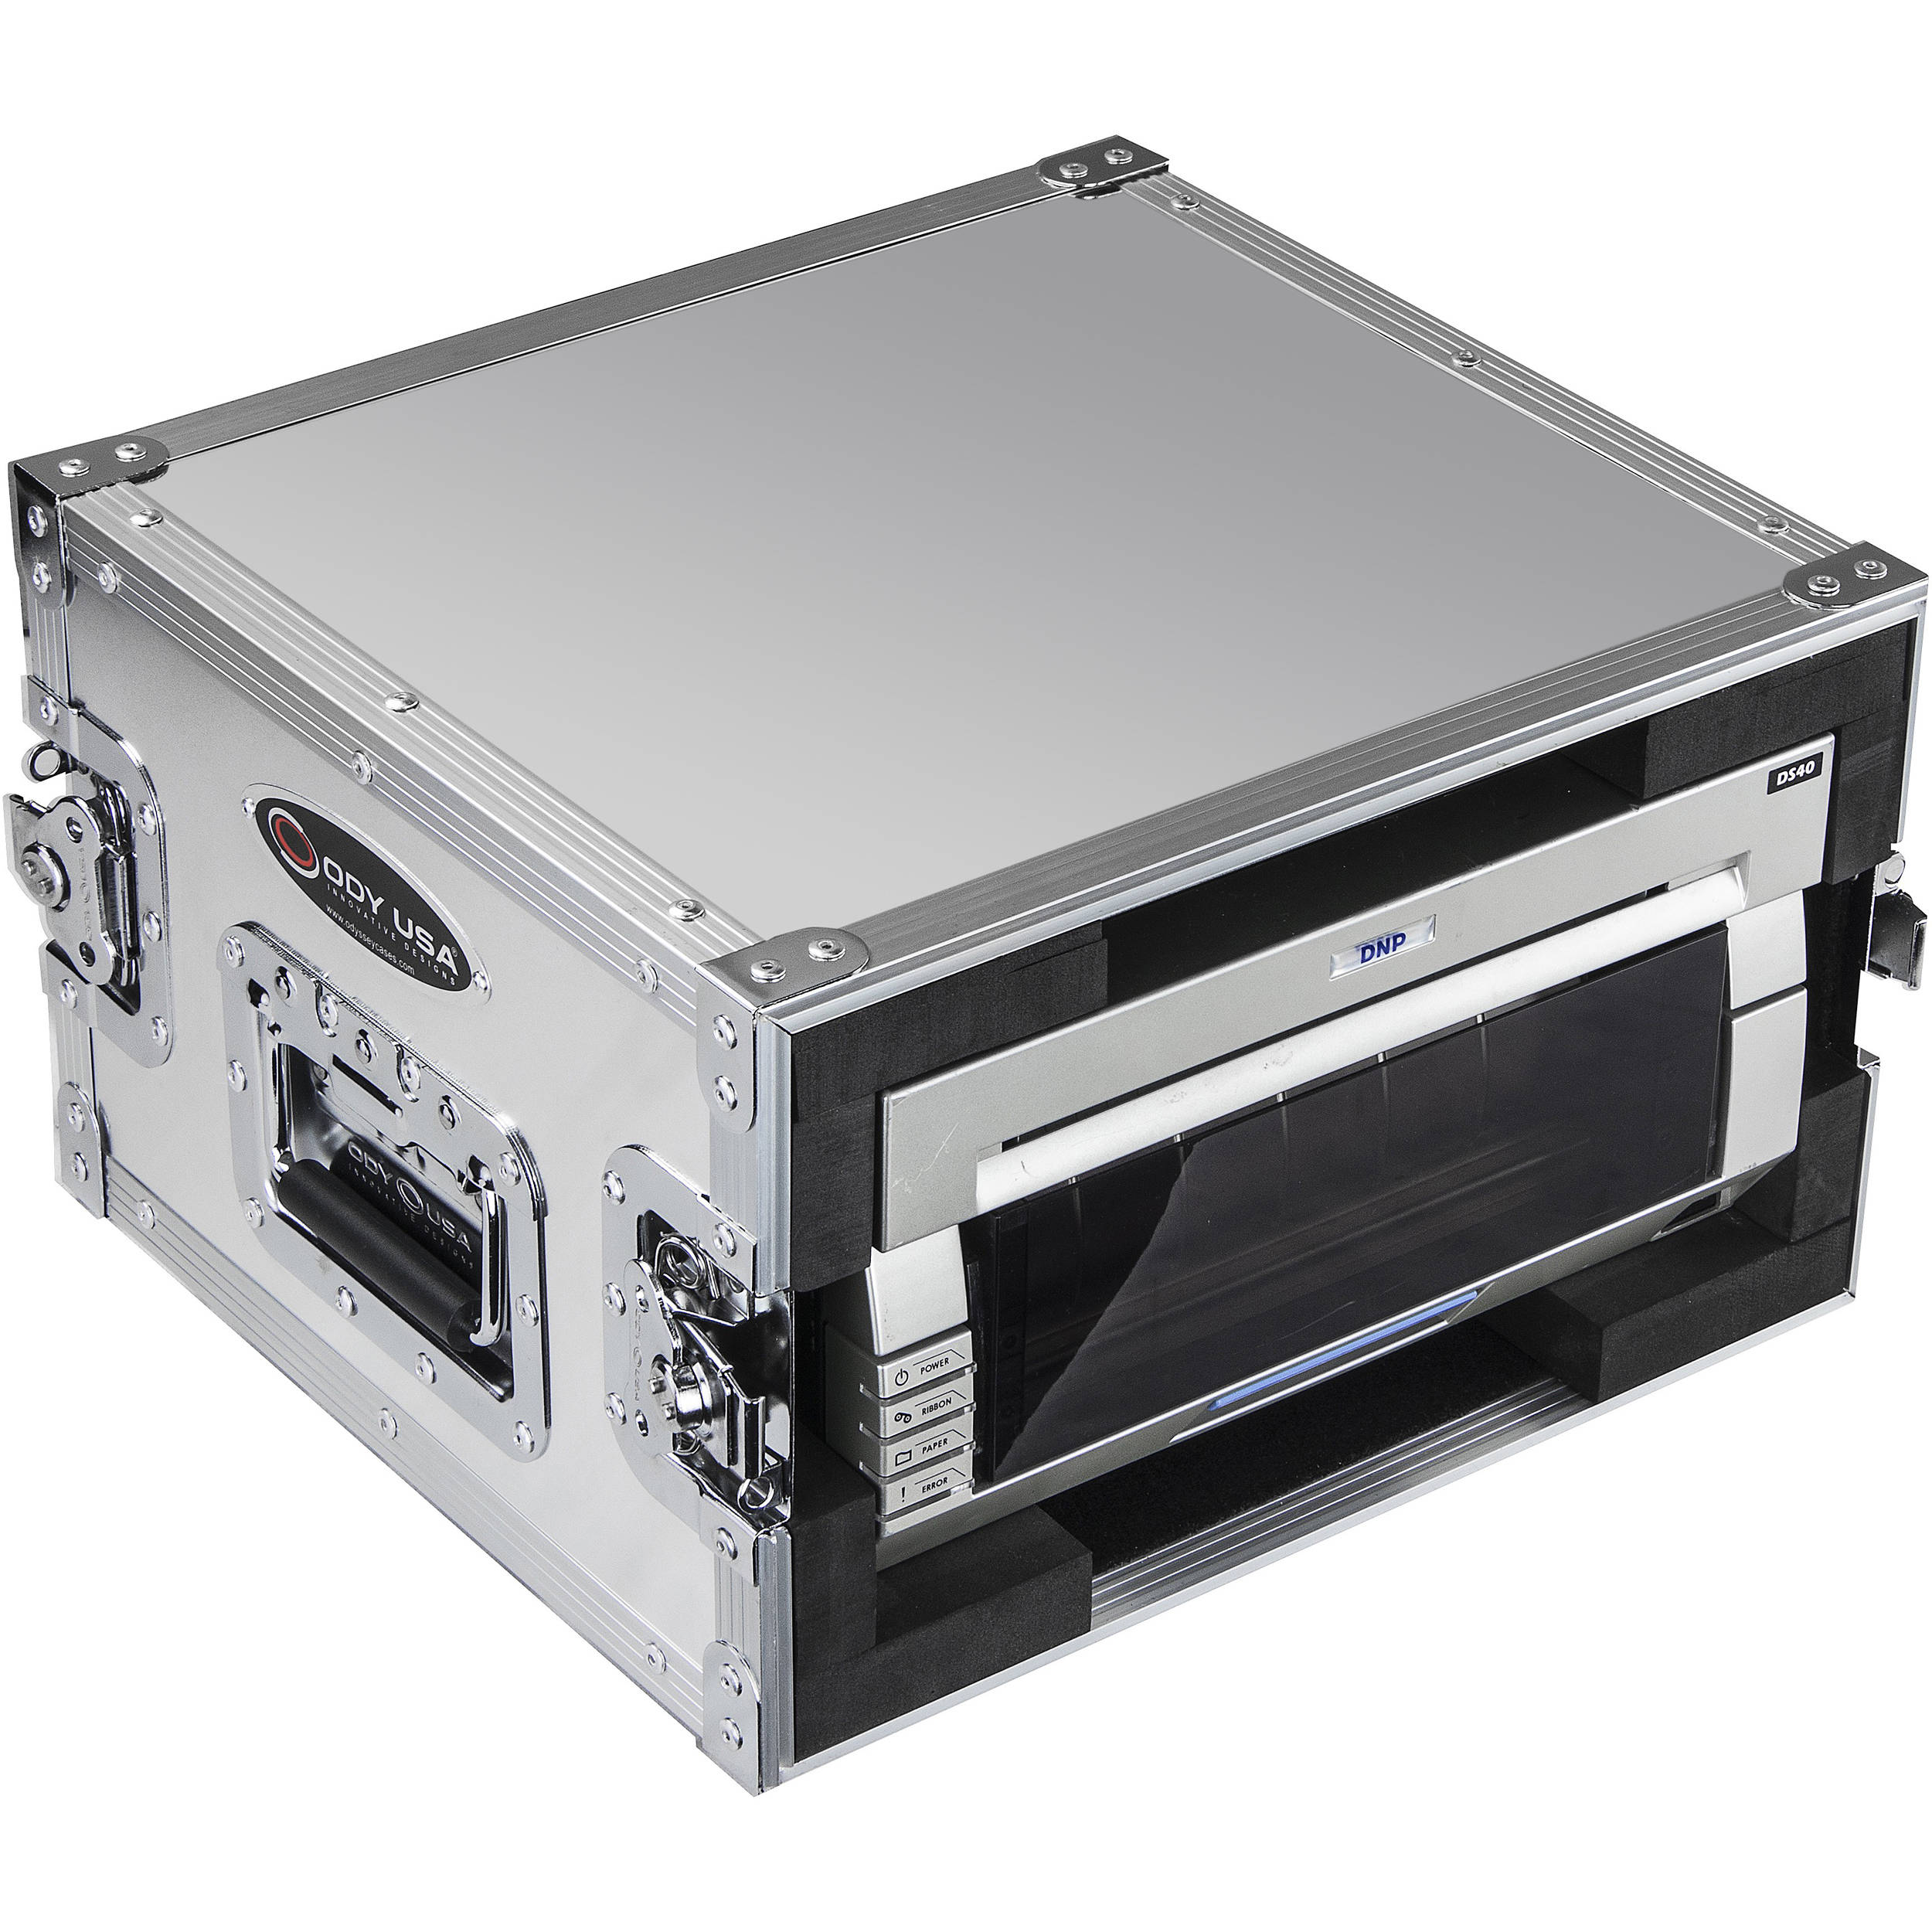 Odyssey Innovative Designs DNP DS40 & DS80 Photo Booth Printer Case  (Natural Aluminum)